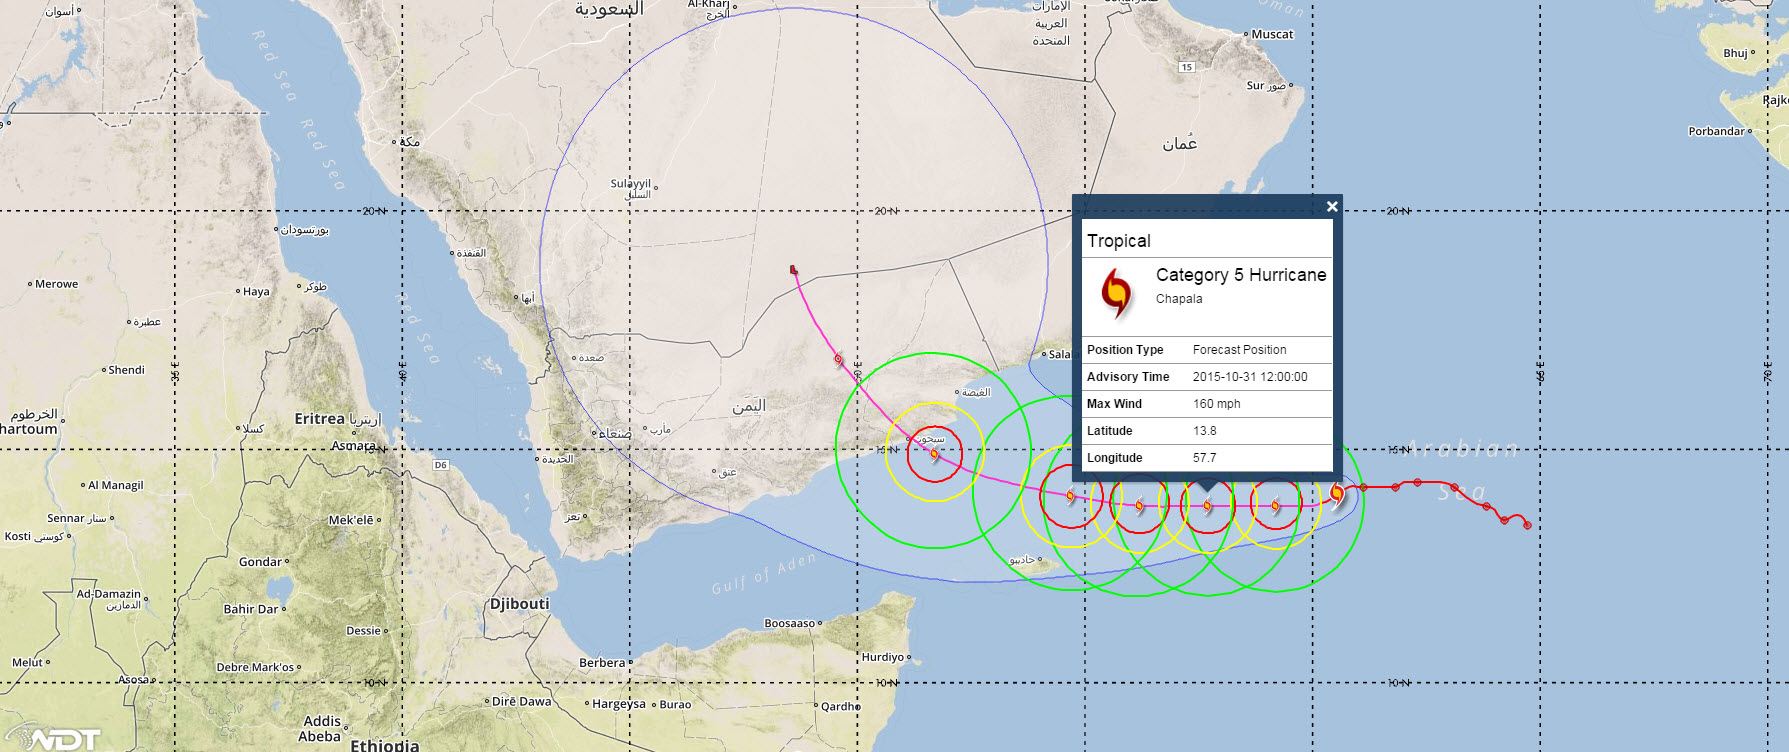 Cyclone Chapala expected track